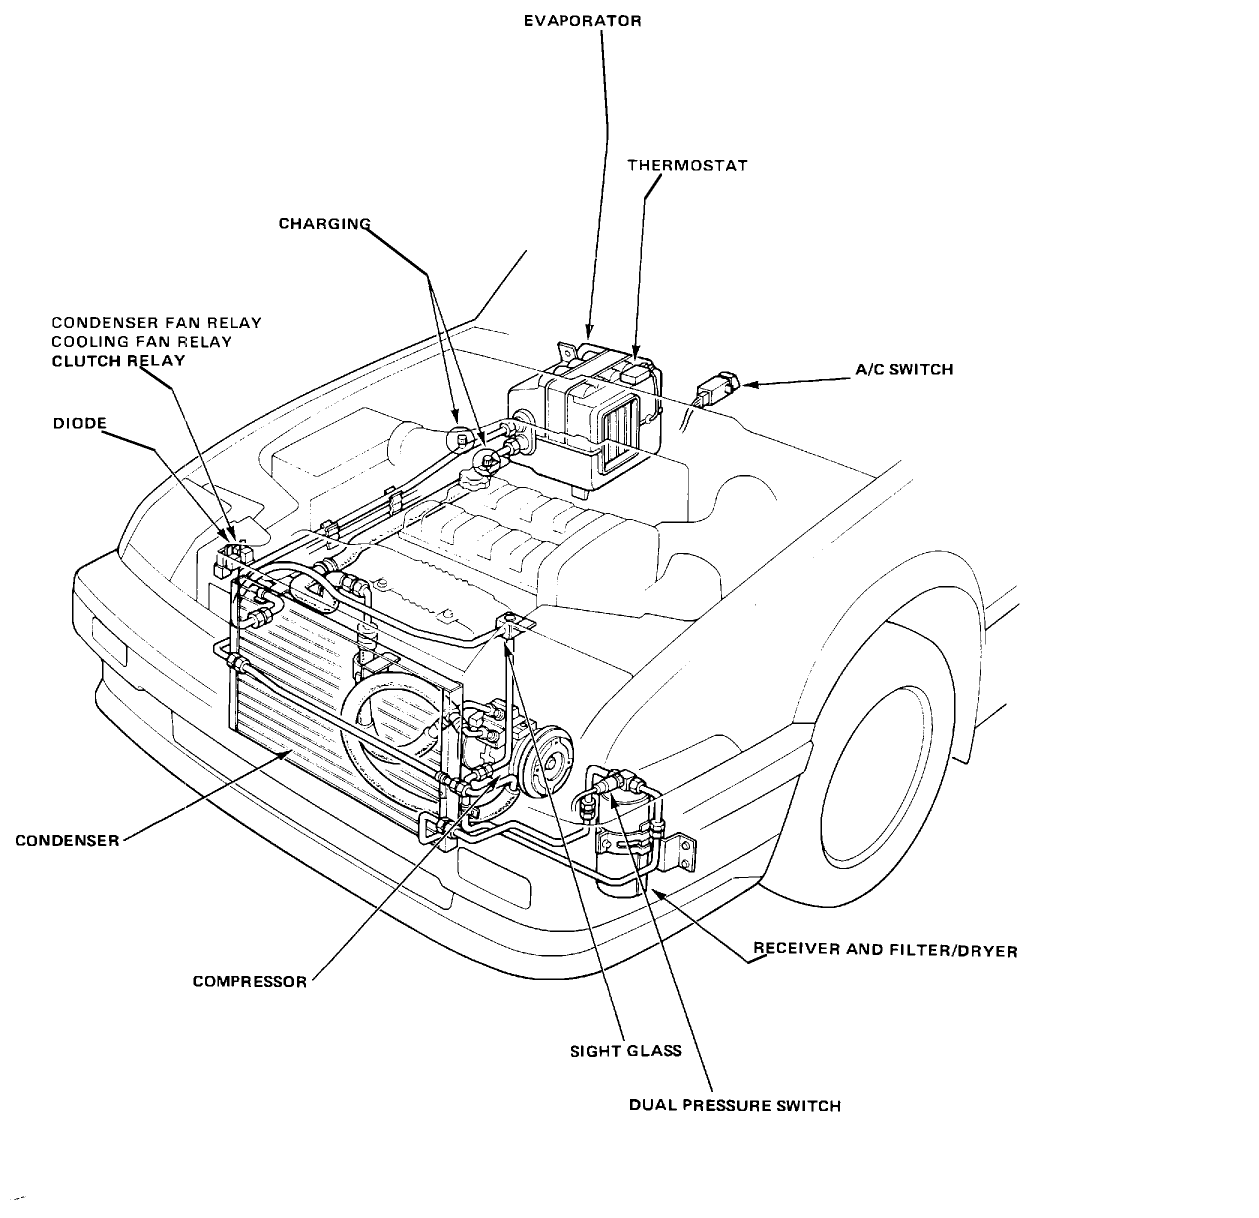 acura integra ignition system circuit diagram the pictures page 5